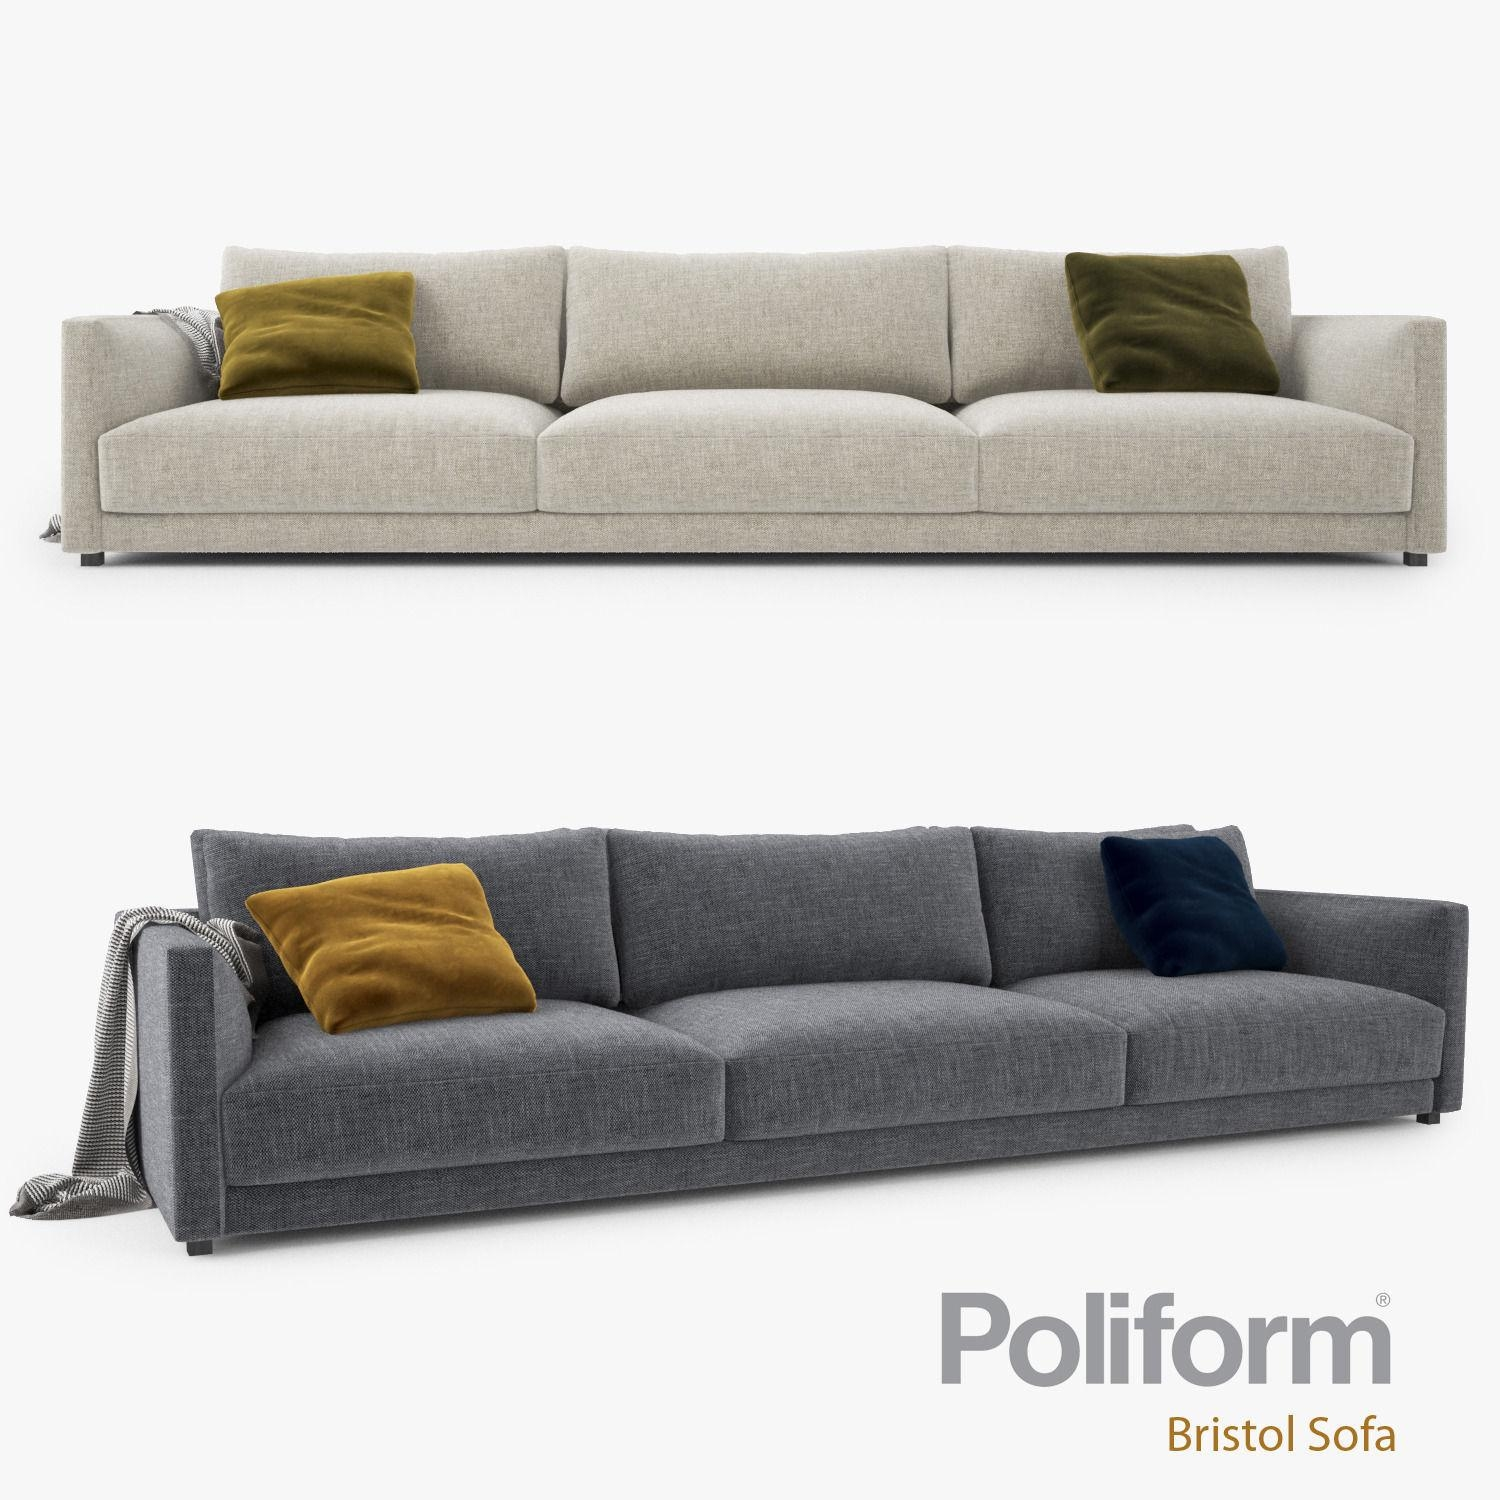 Poliform Bristol Three Seater Sofa 3D Model Max Obj Fbx Mtl For Bristol Sofas (Image 12 of 20)